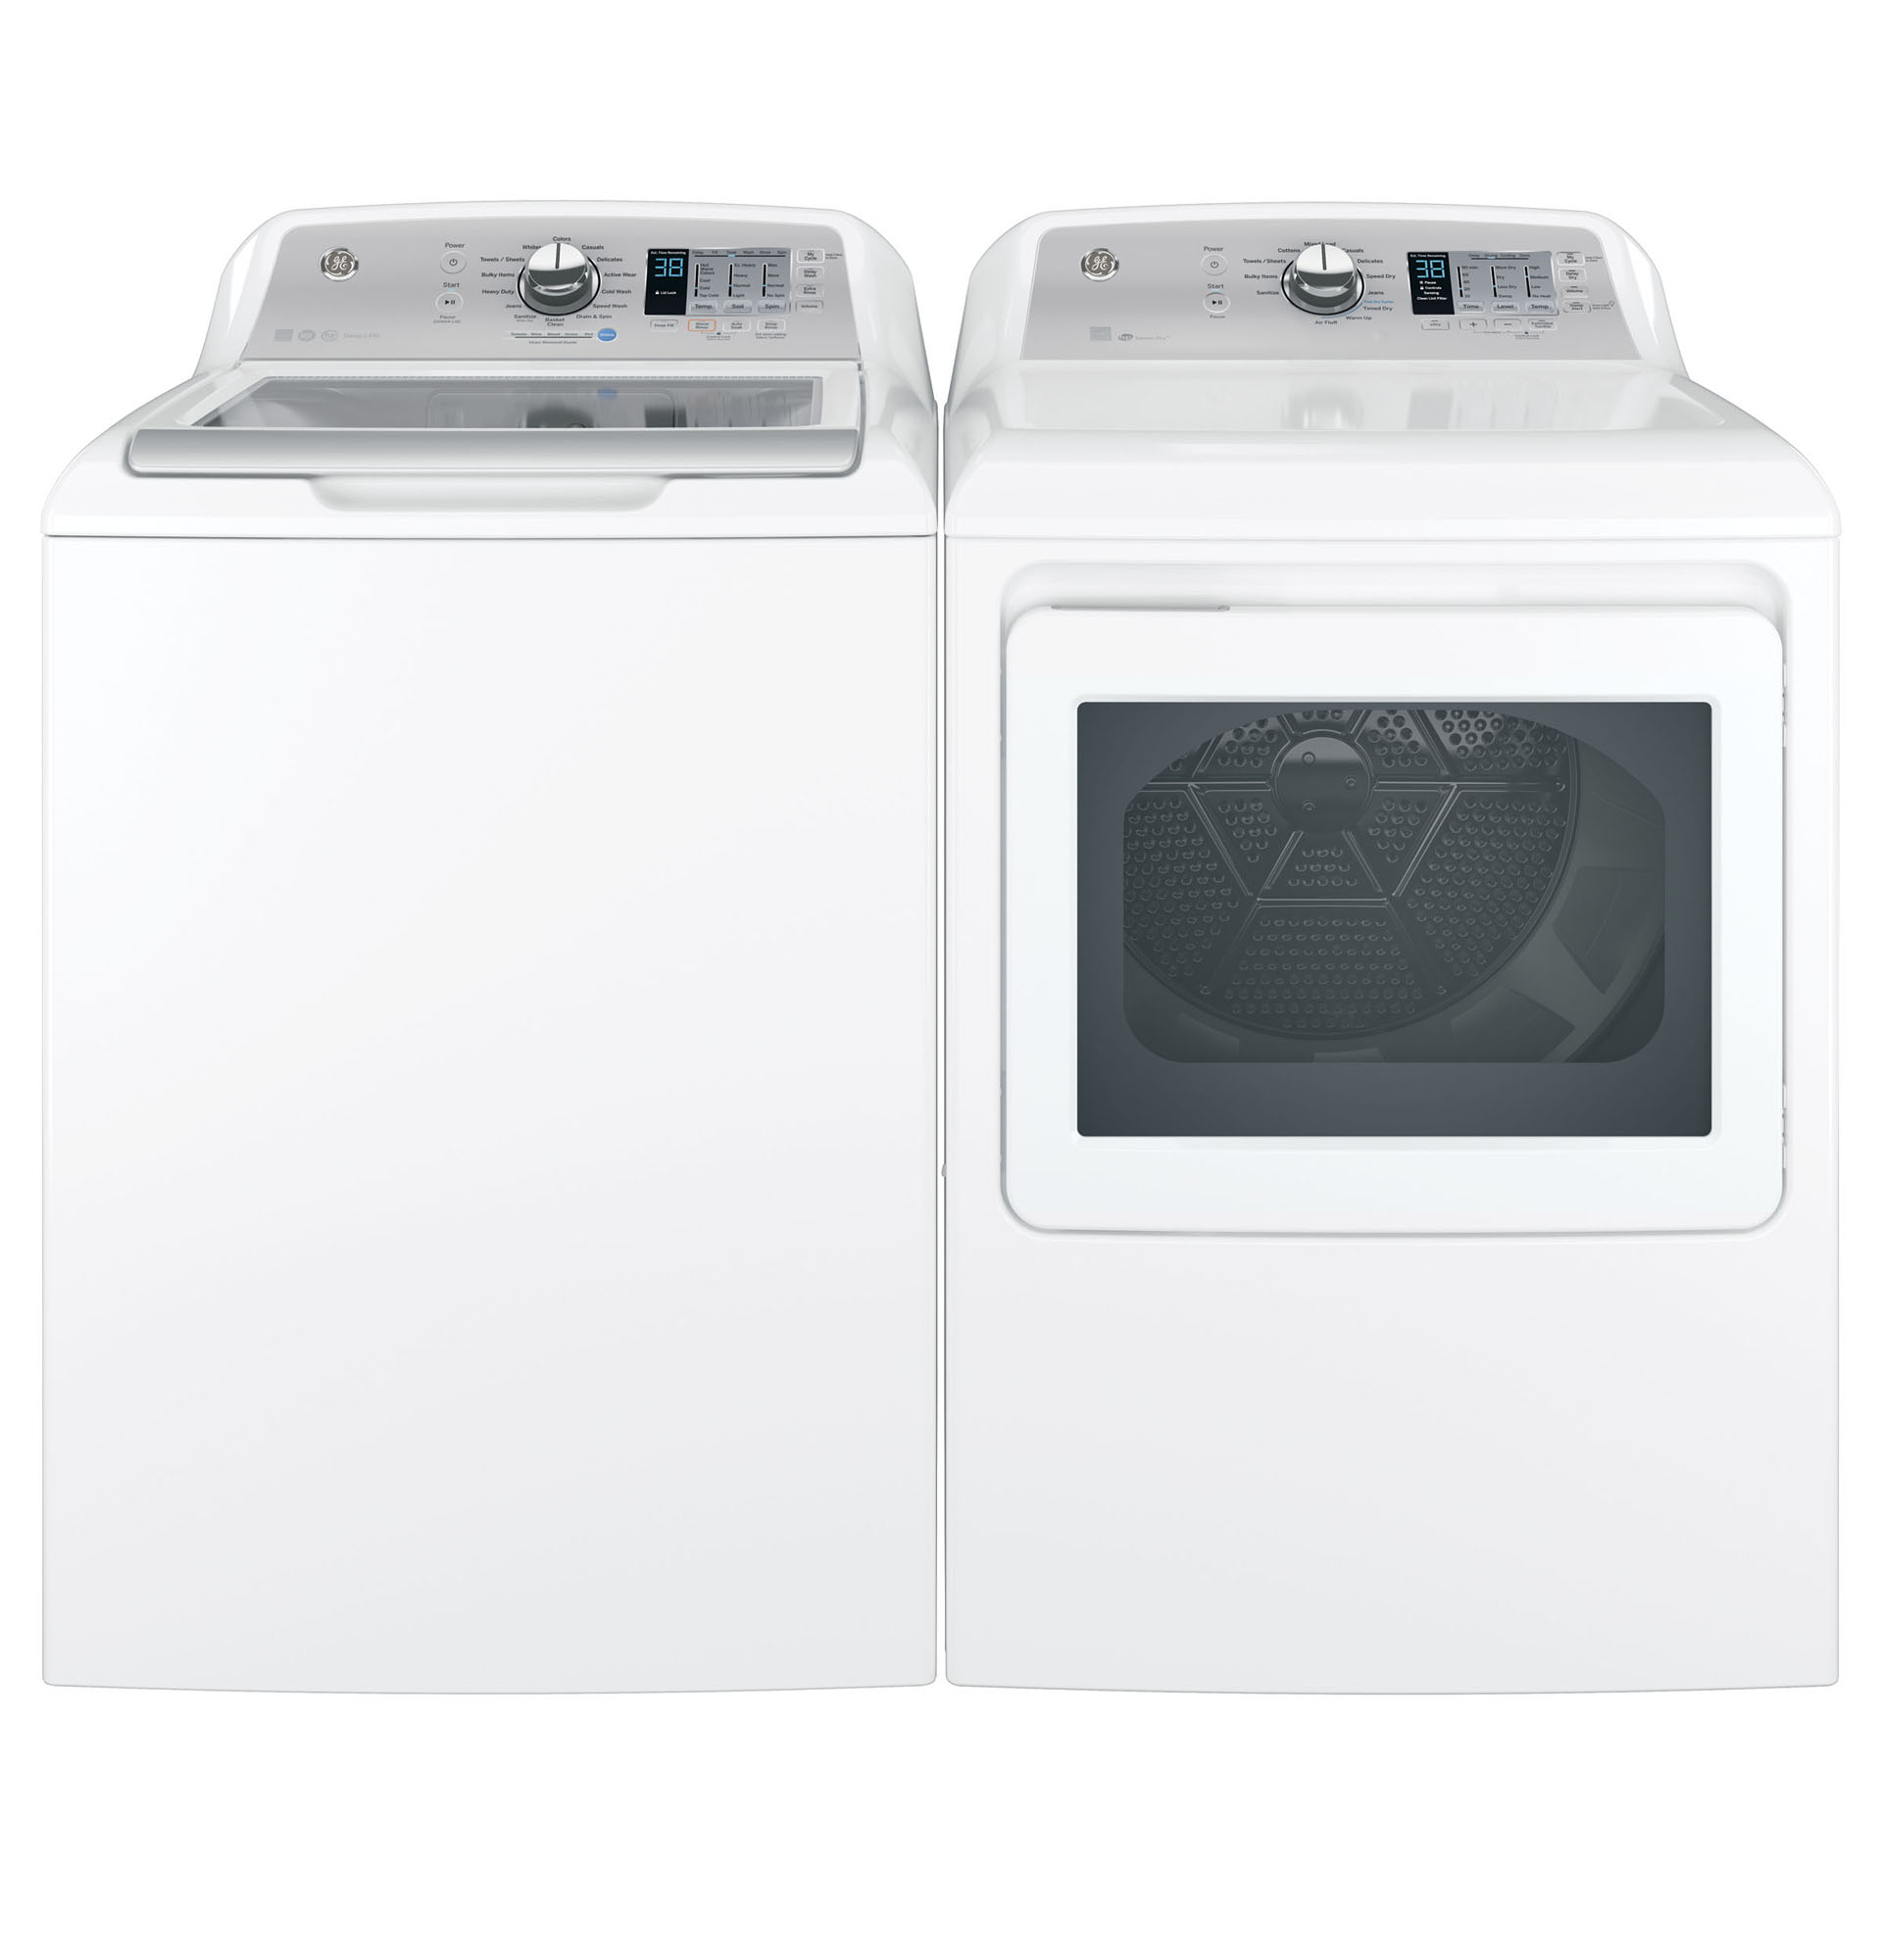 GE Appliances GTD65GBSJWS 7.4 cu. ft. Gas Dryer w/ Aluminized Alloy Drum - White